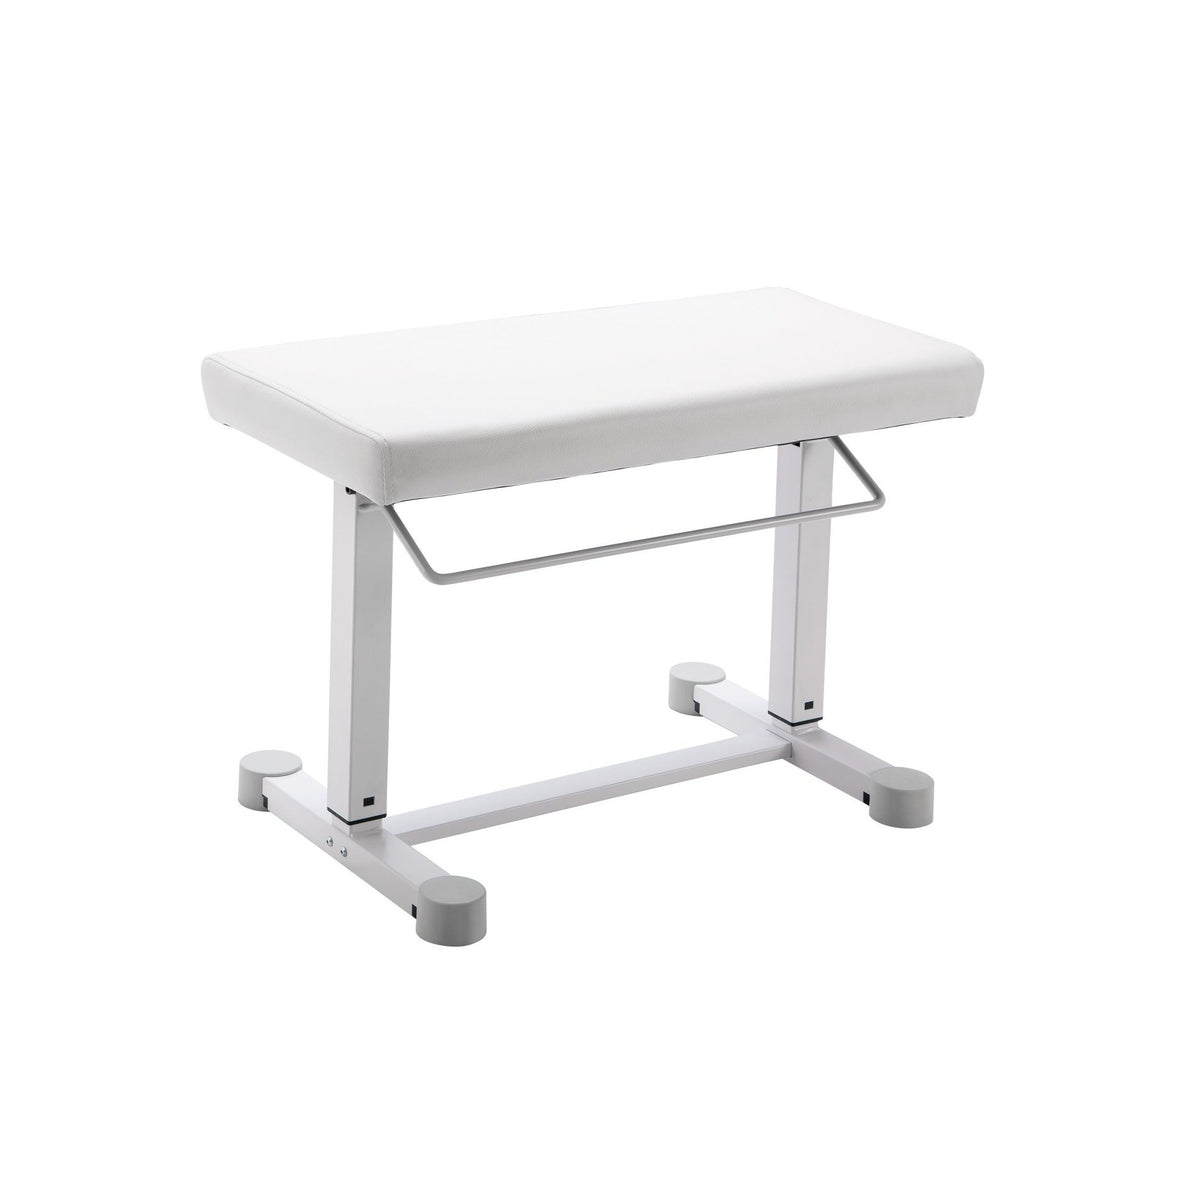 König & Meyer - 14080/14081 <Uplift> Piano Benches-Instrument Stand-König & Meyer-White Imitation Leather (14080)-Music Elements